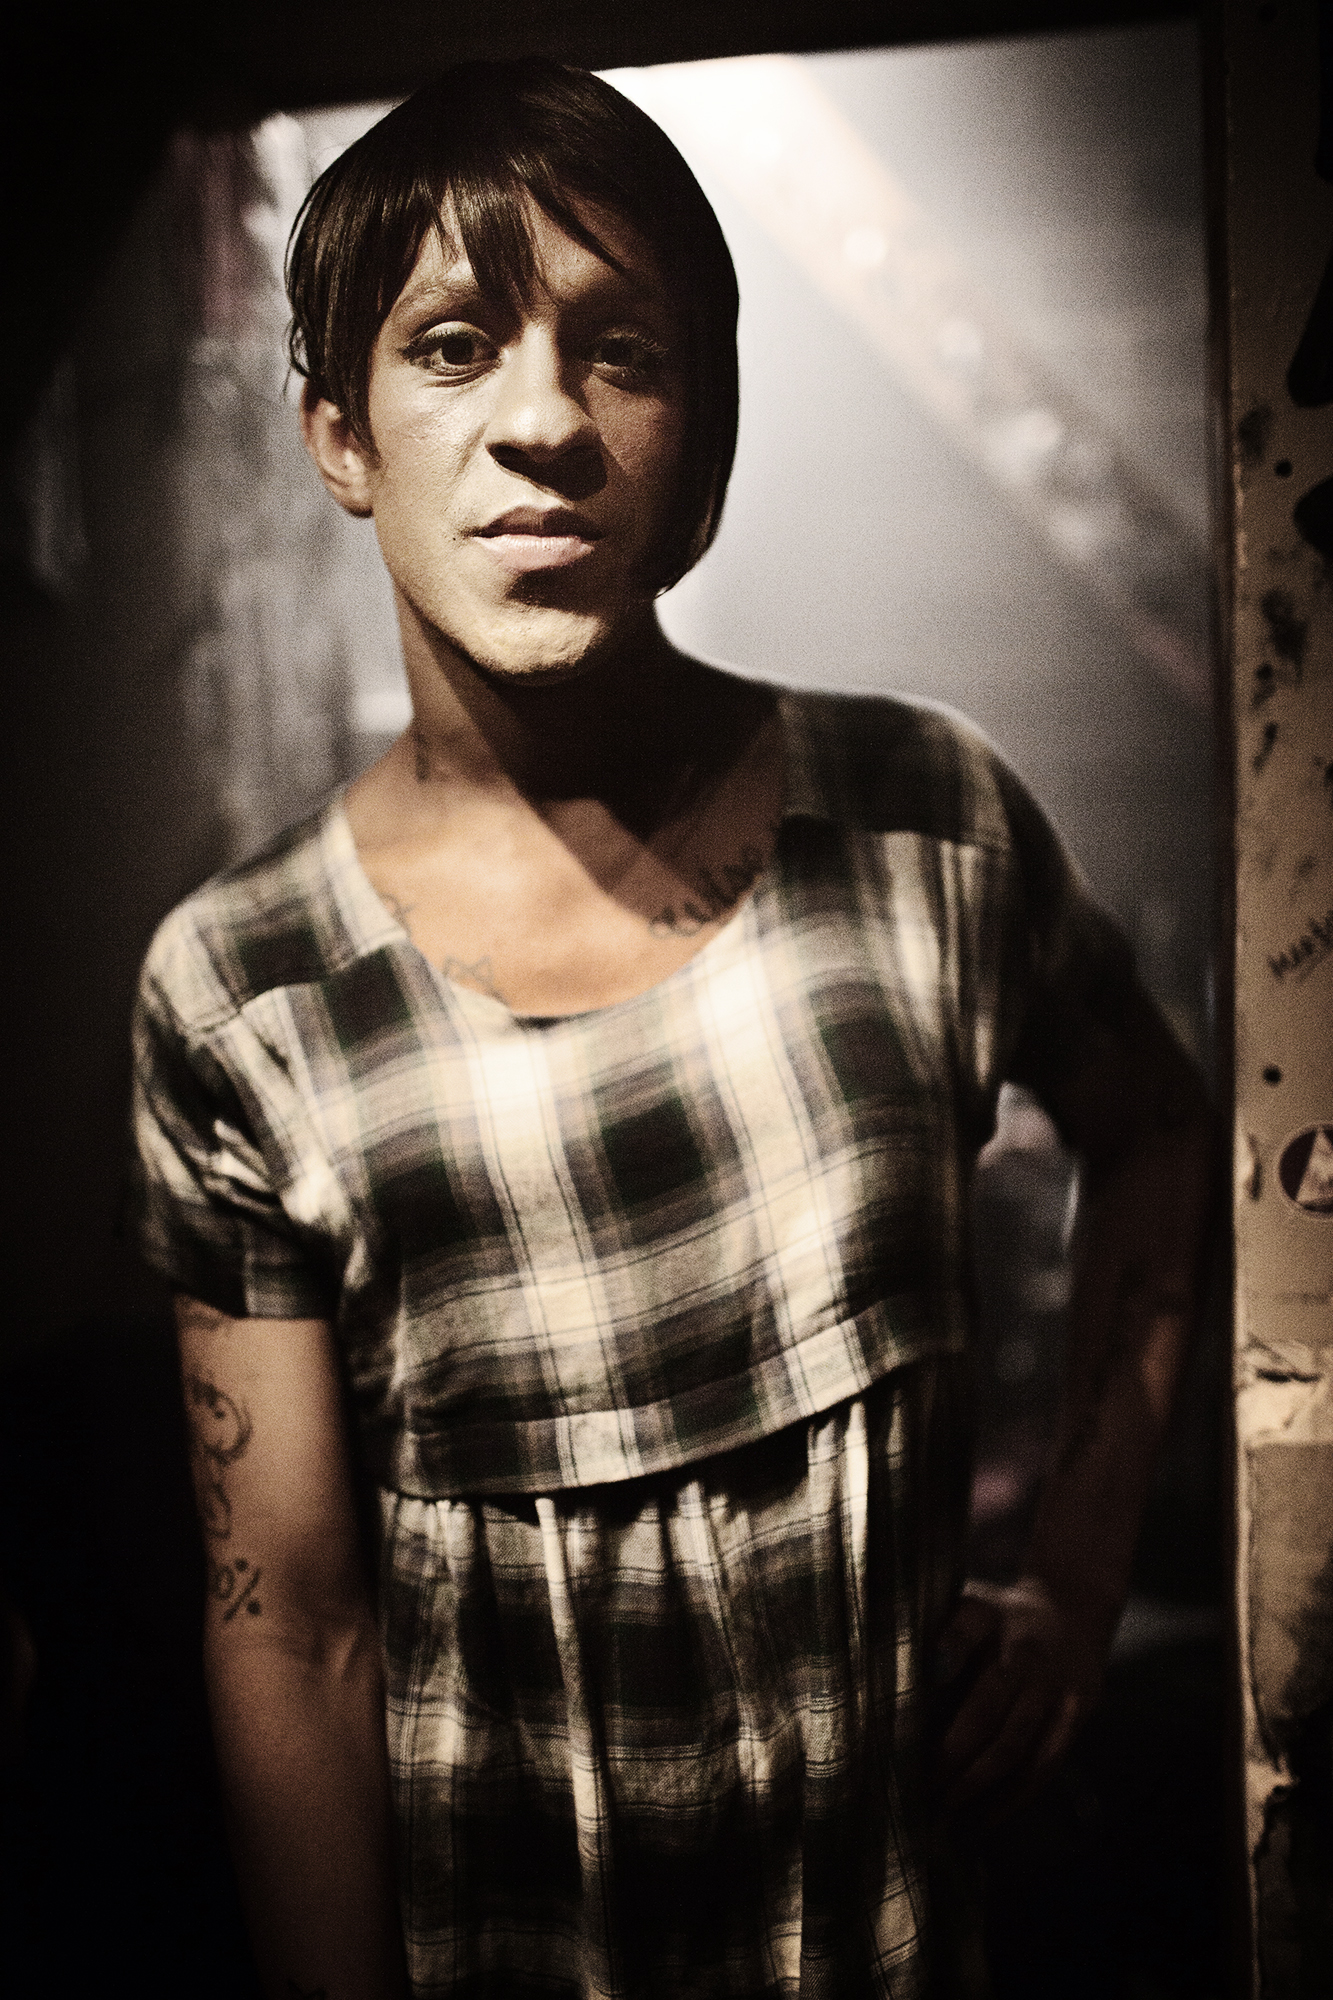 Mykki Blanco, rapper